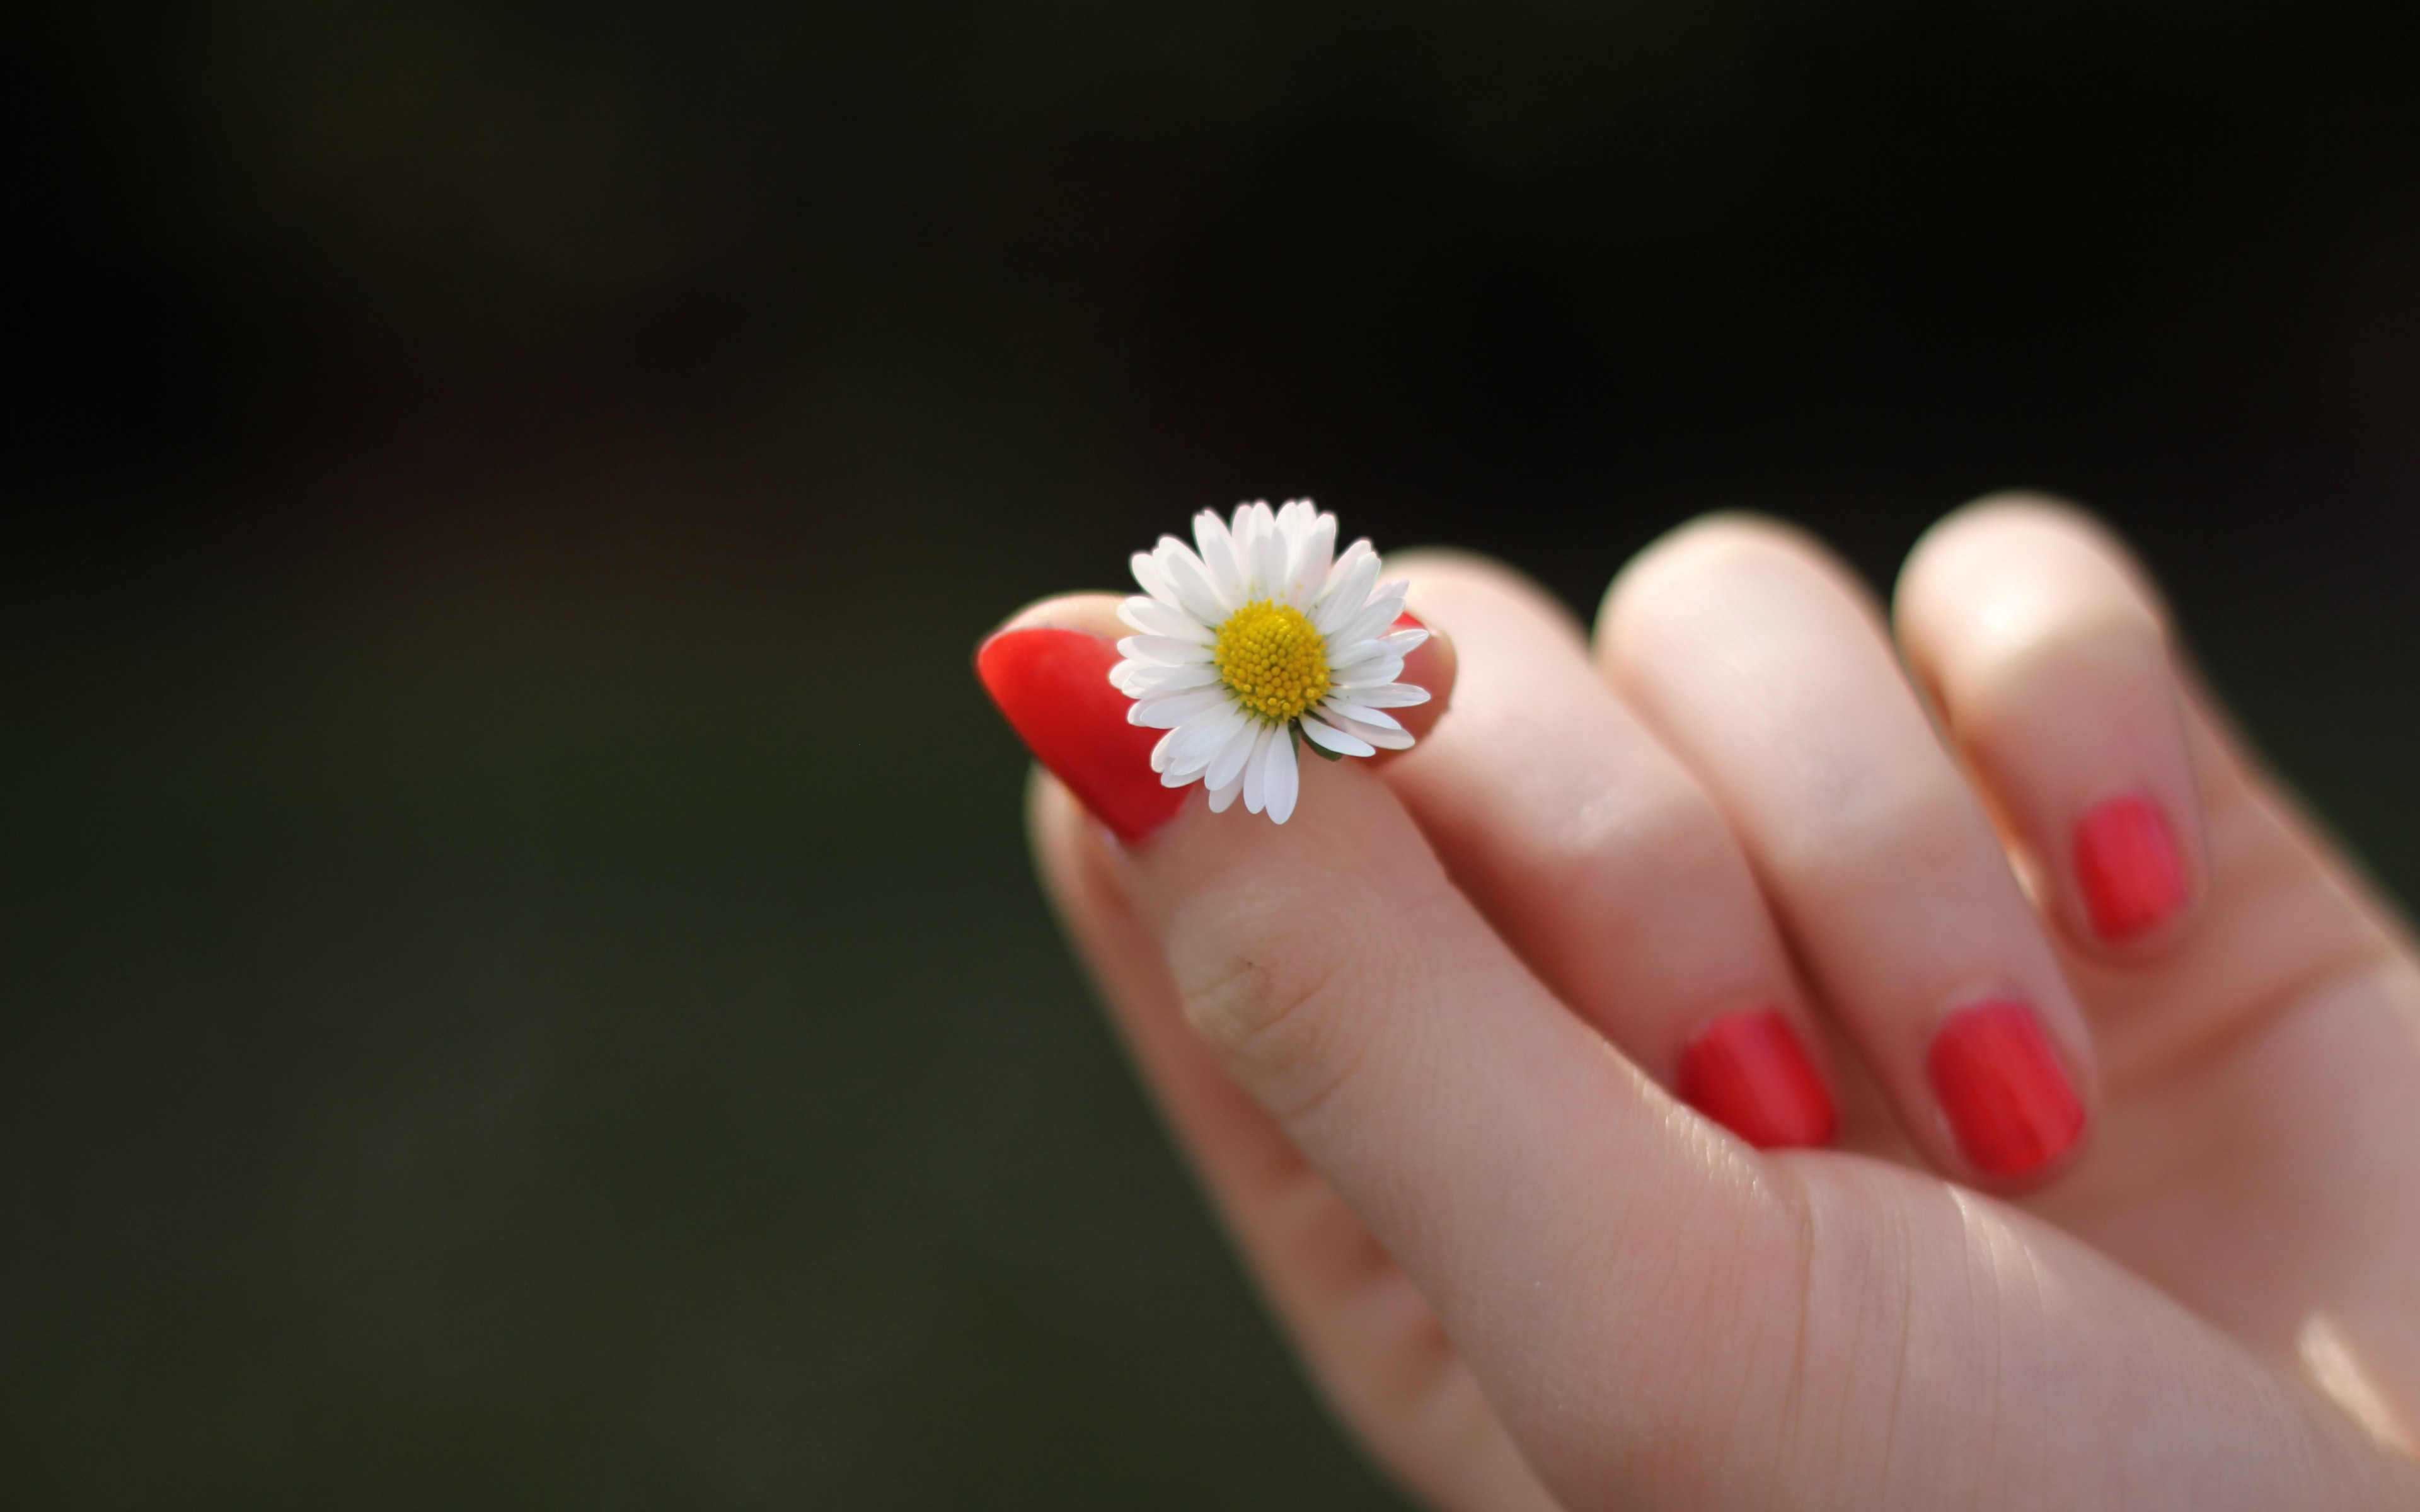 Girl with red nails and a daisy flower wallpaper 3840x2400